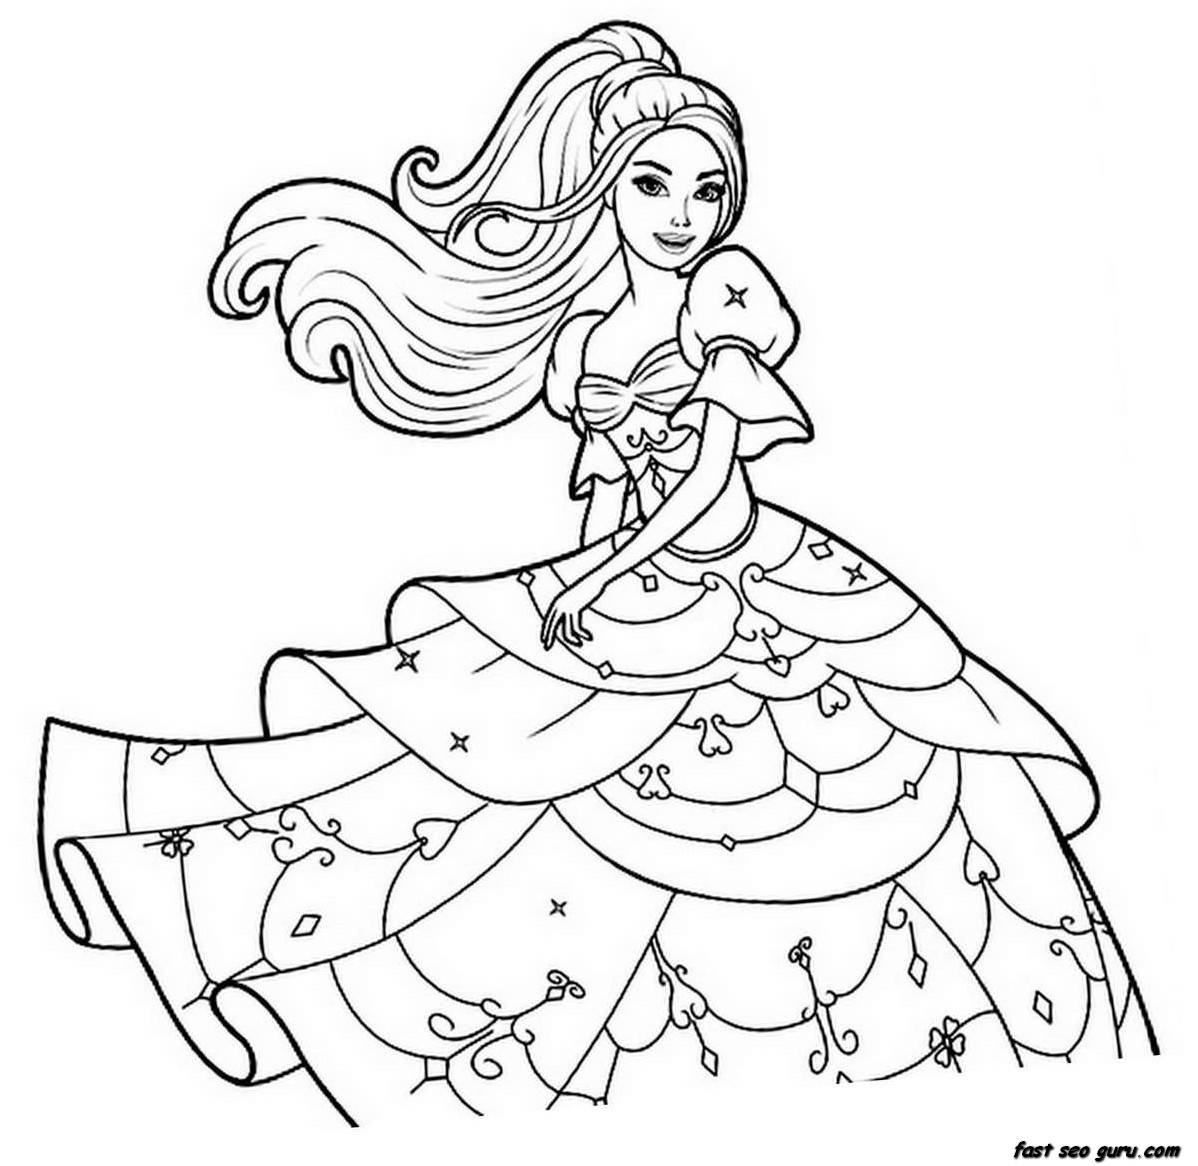 coloring for girls print download coloring pages for girls recommend a girls coloring for